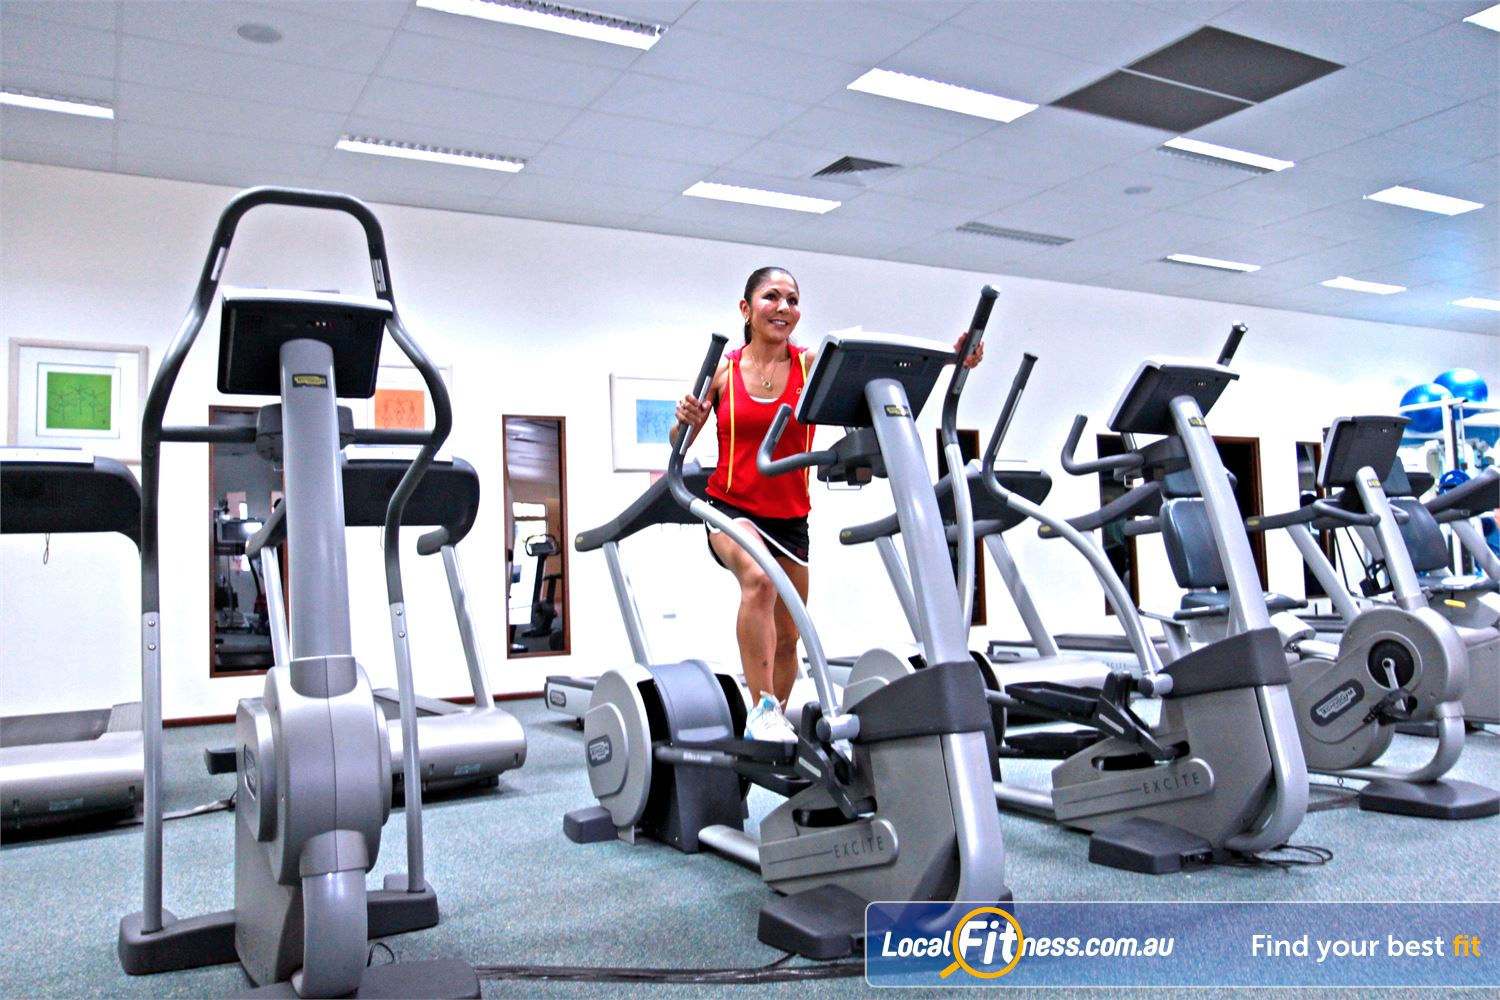 Fernwood Fitness Near Springwood Underwood cross trainers add variety to your cardio workout.